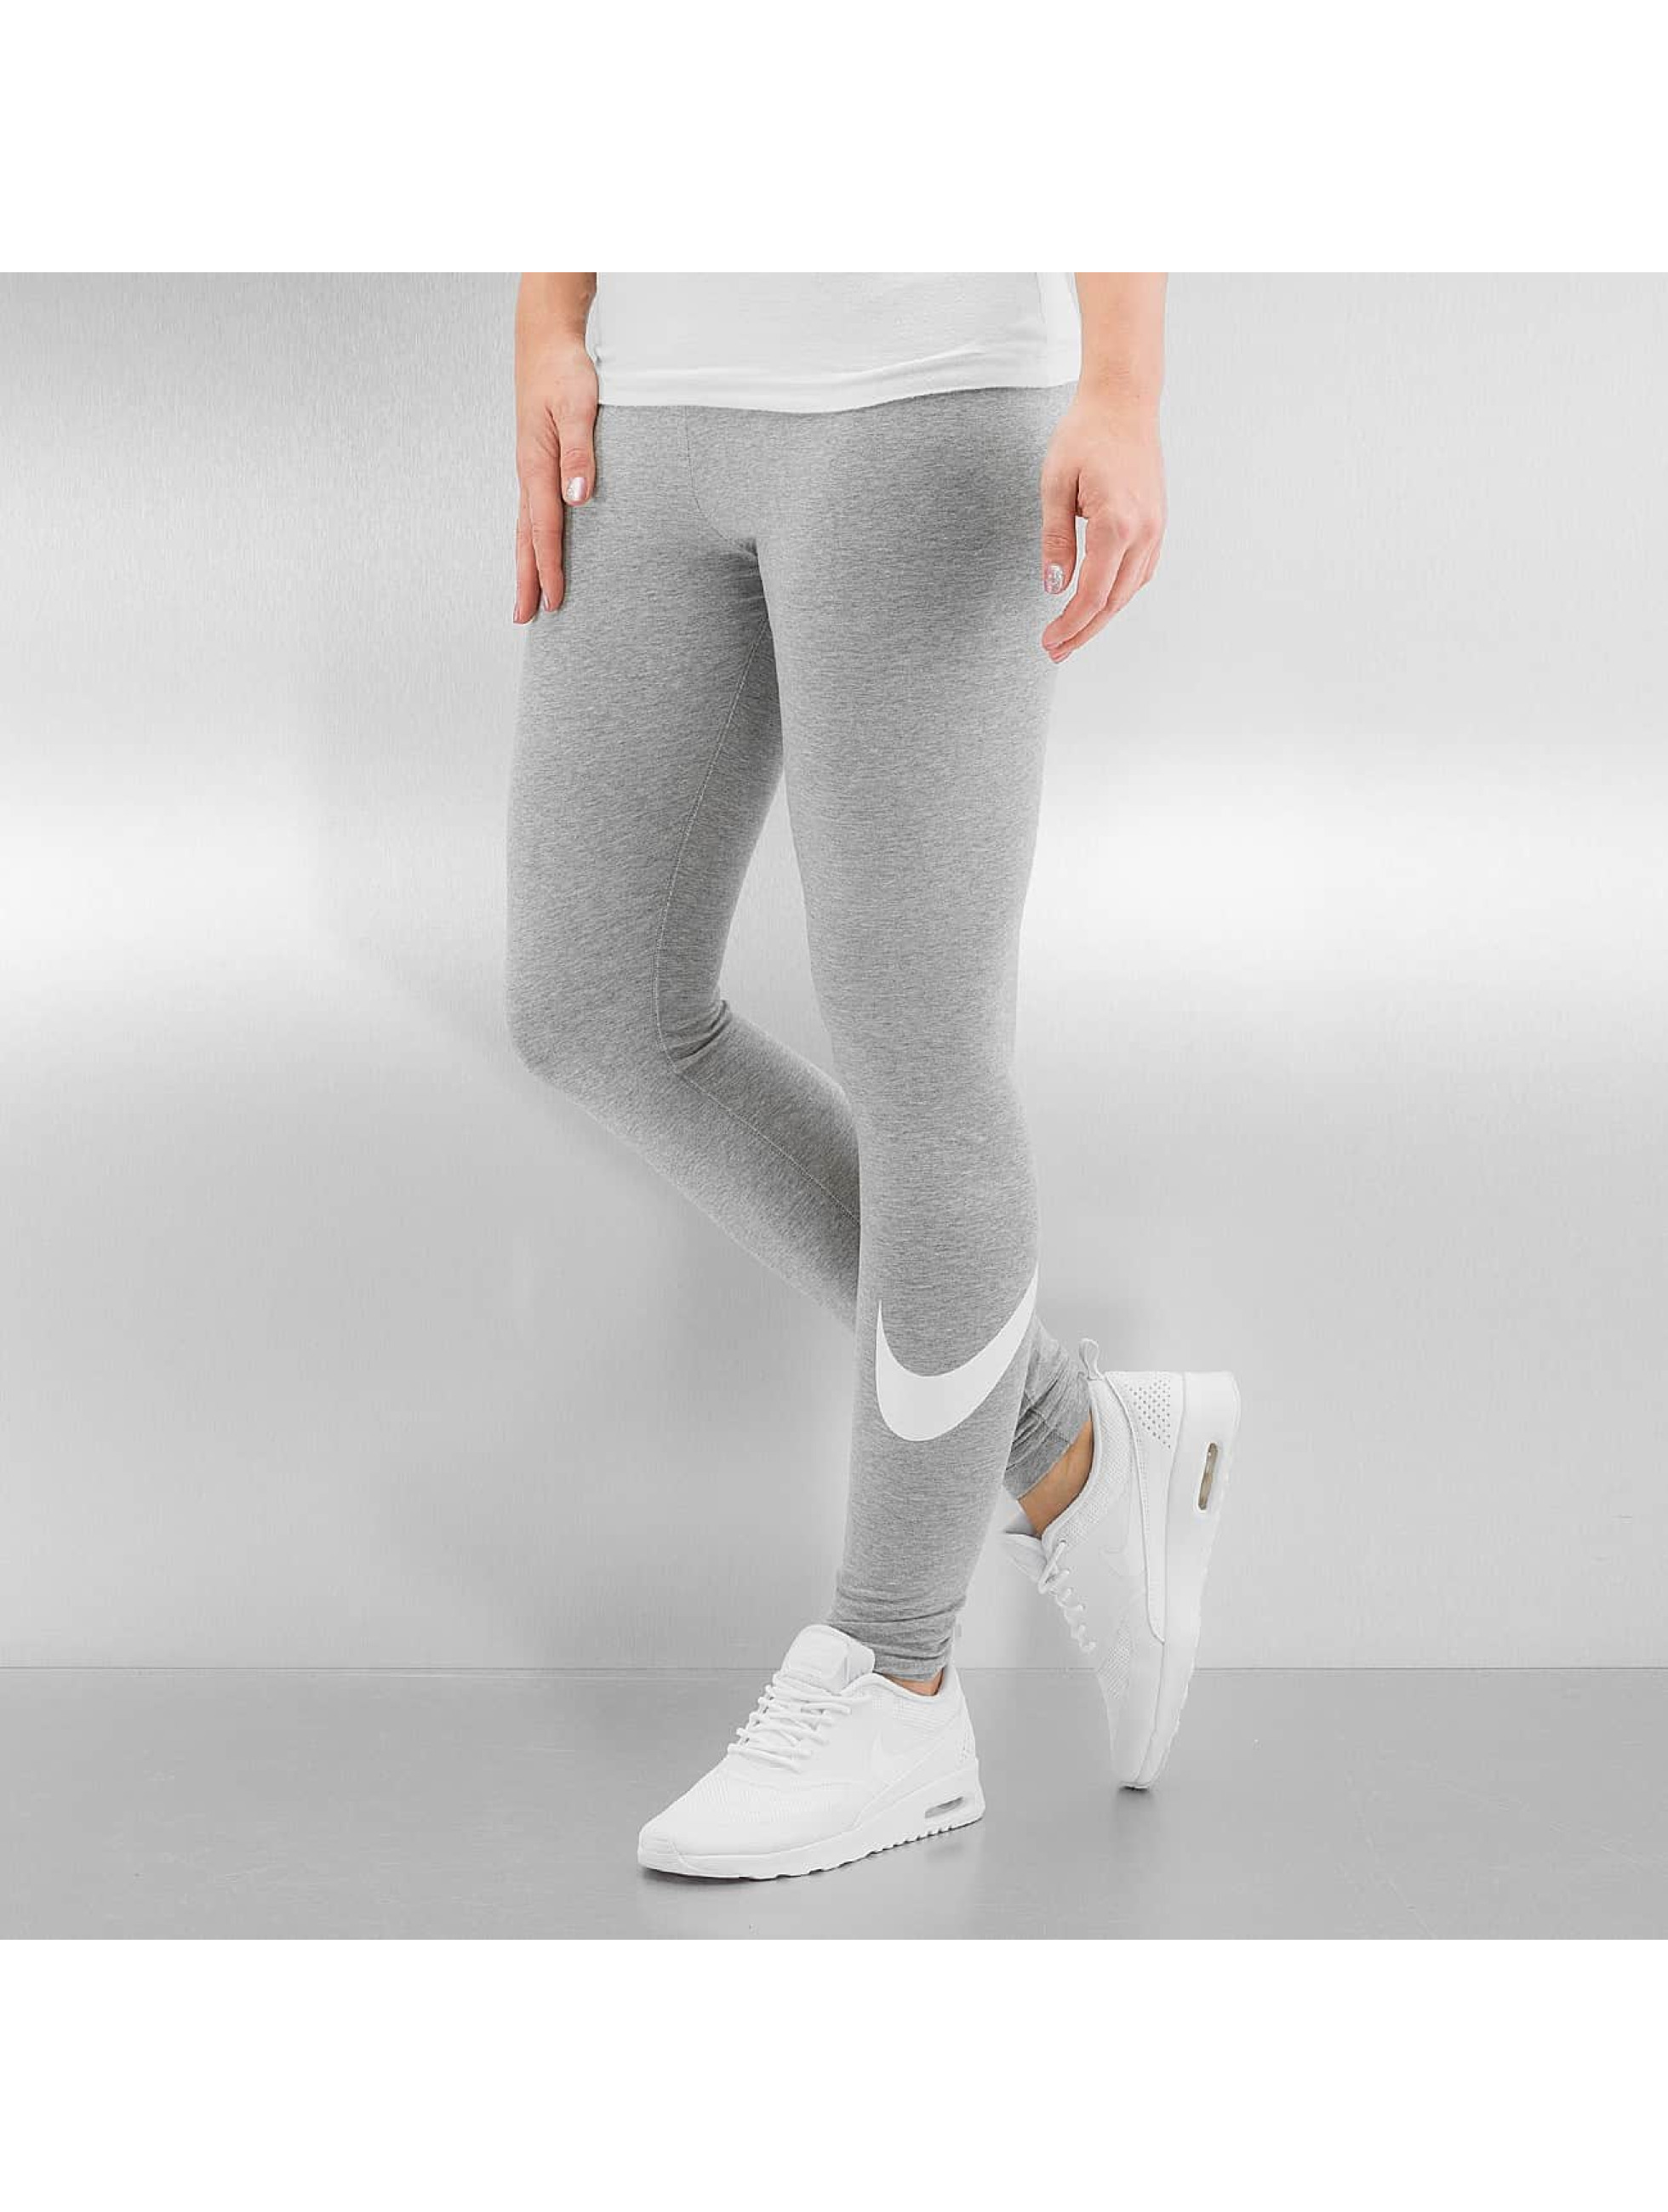 Nike Frauen Legging W NSW Logo Club in grau